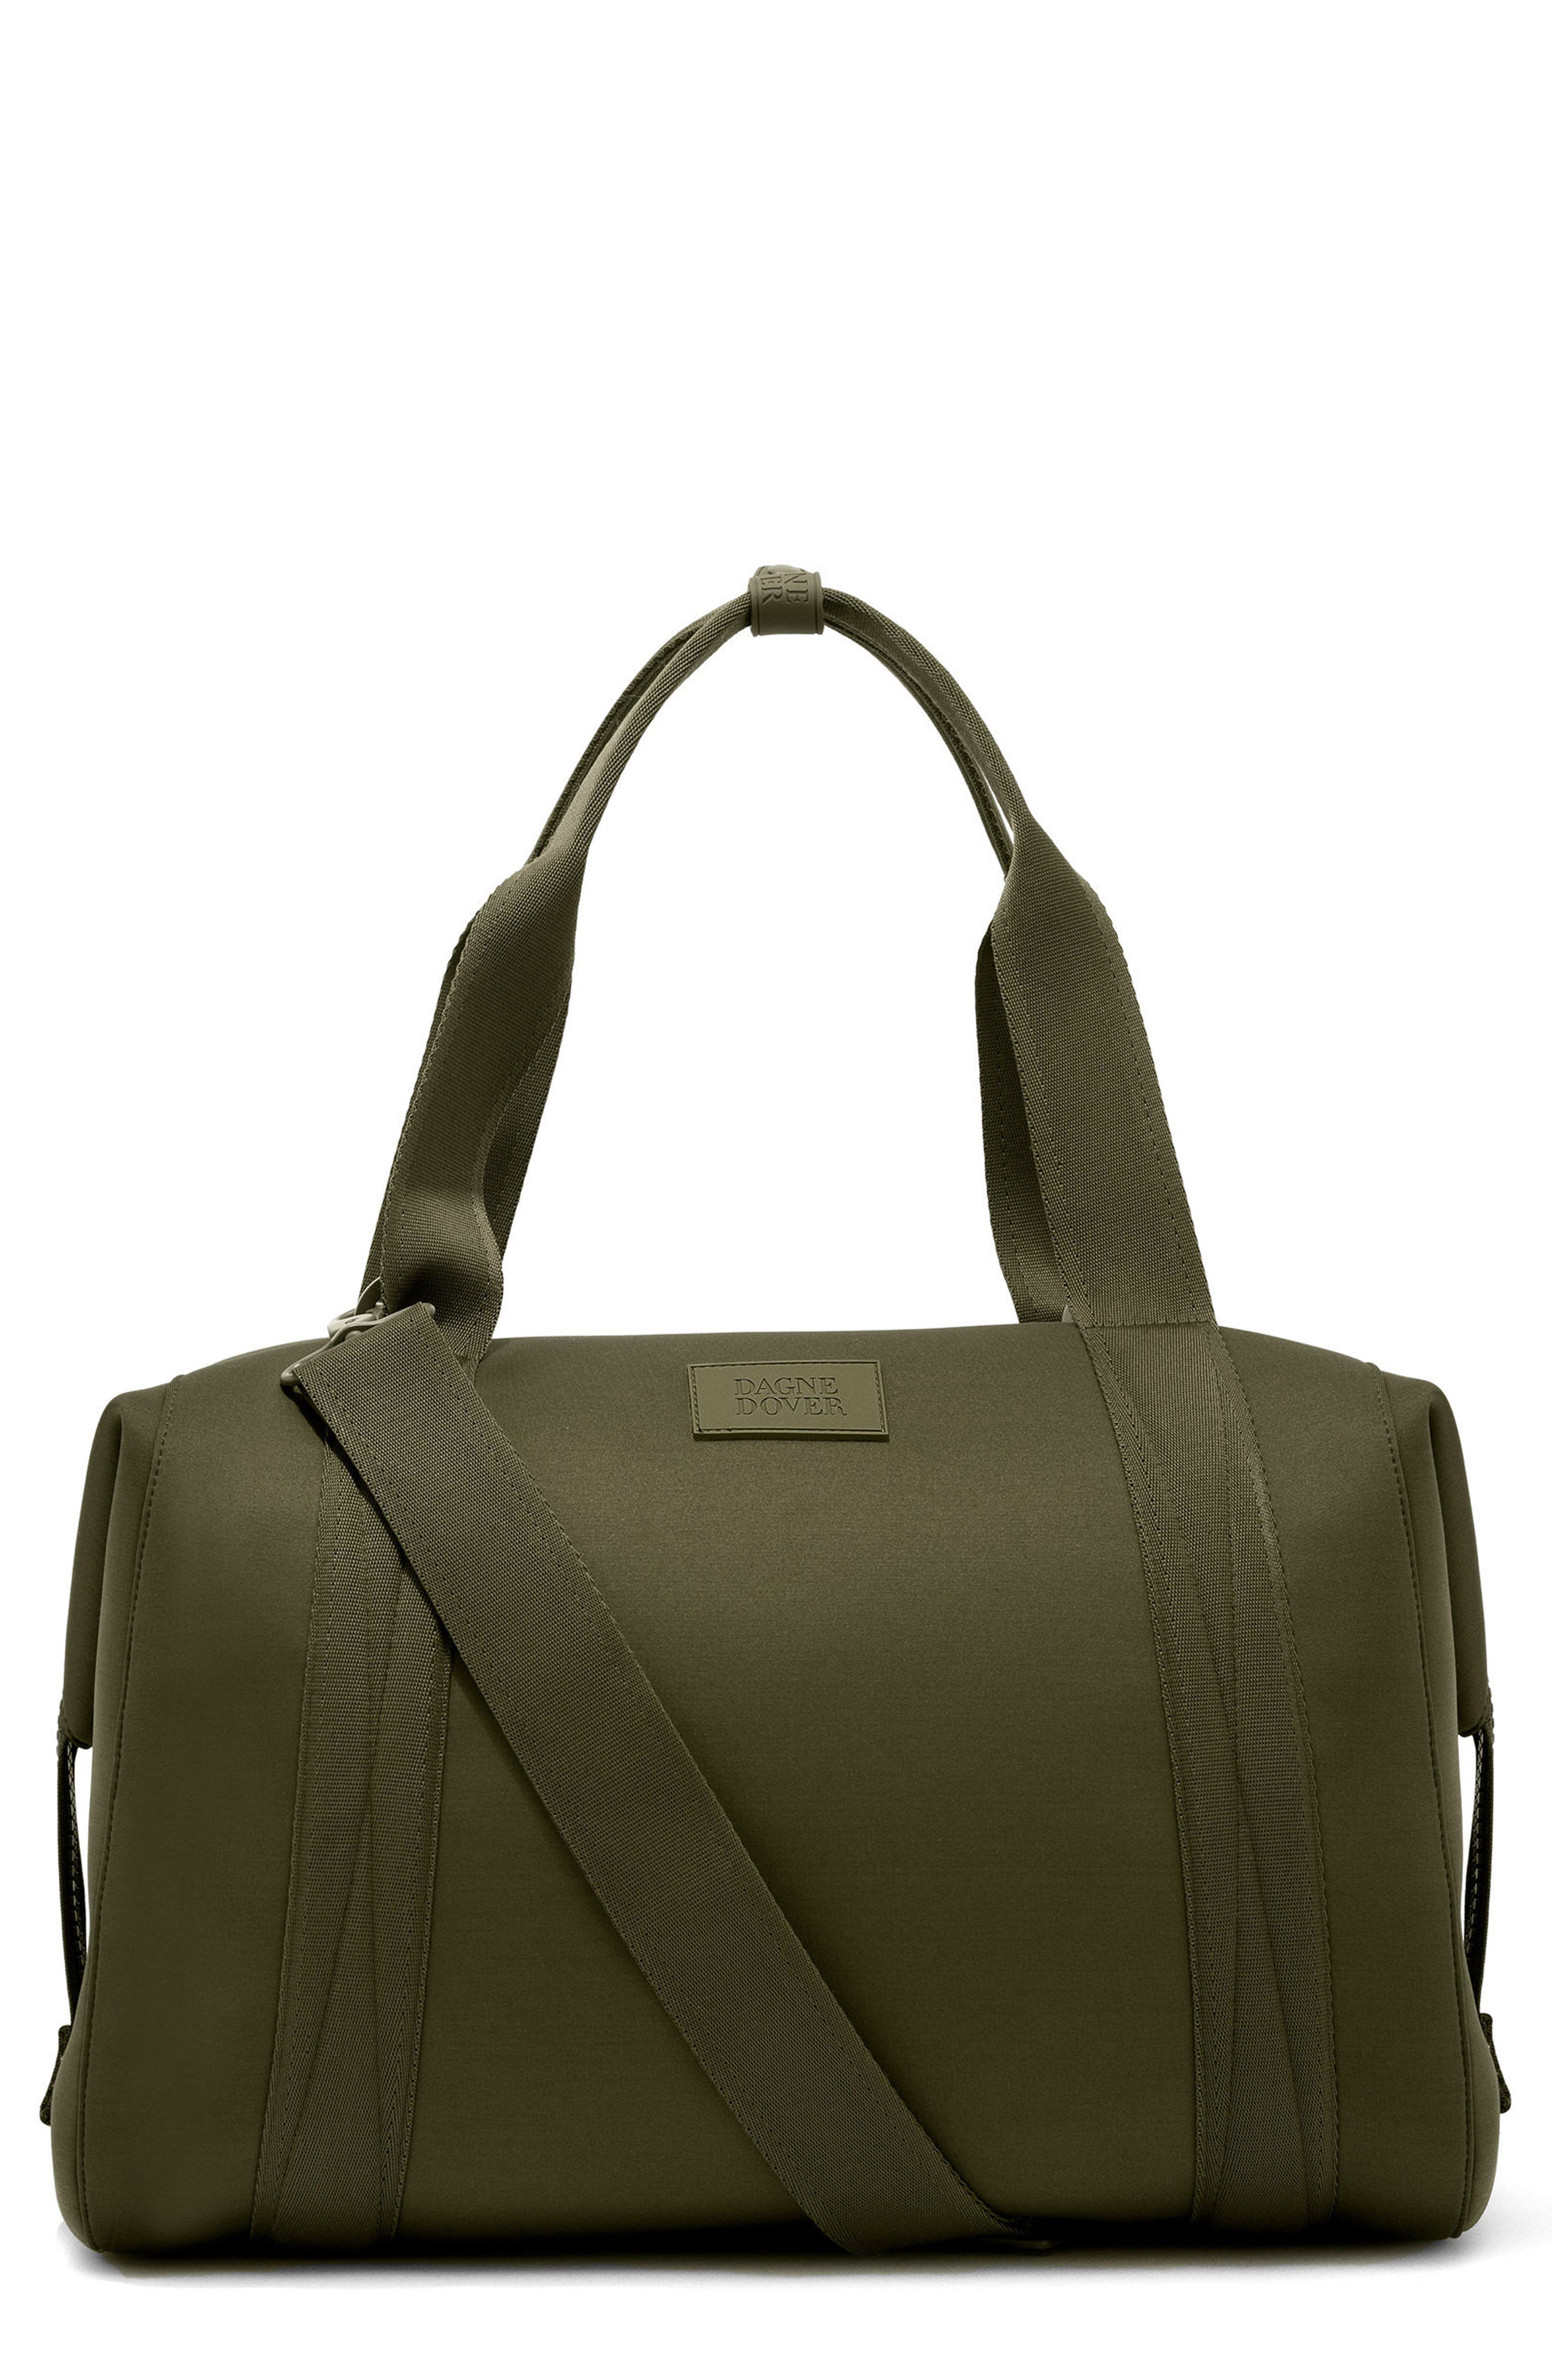 Main Image - Dagne Dover Large Landon Neoprene Duffel Bag